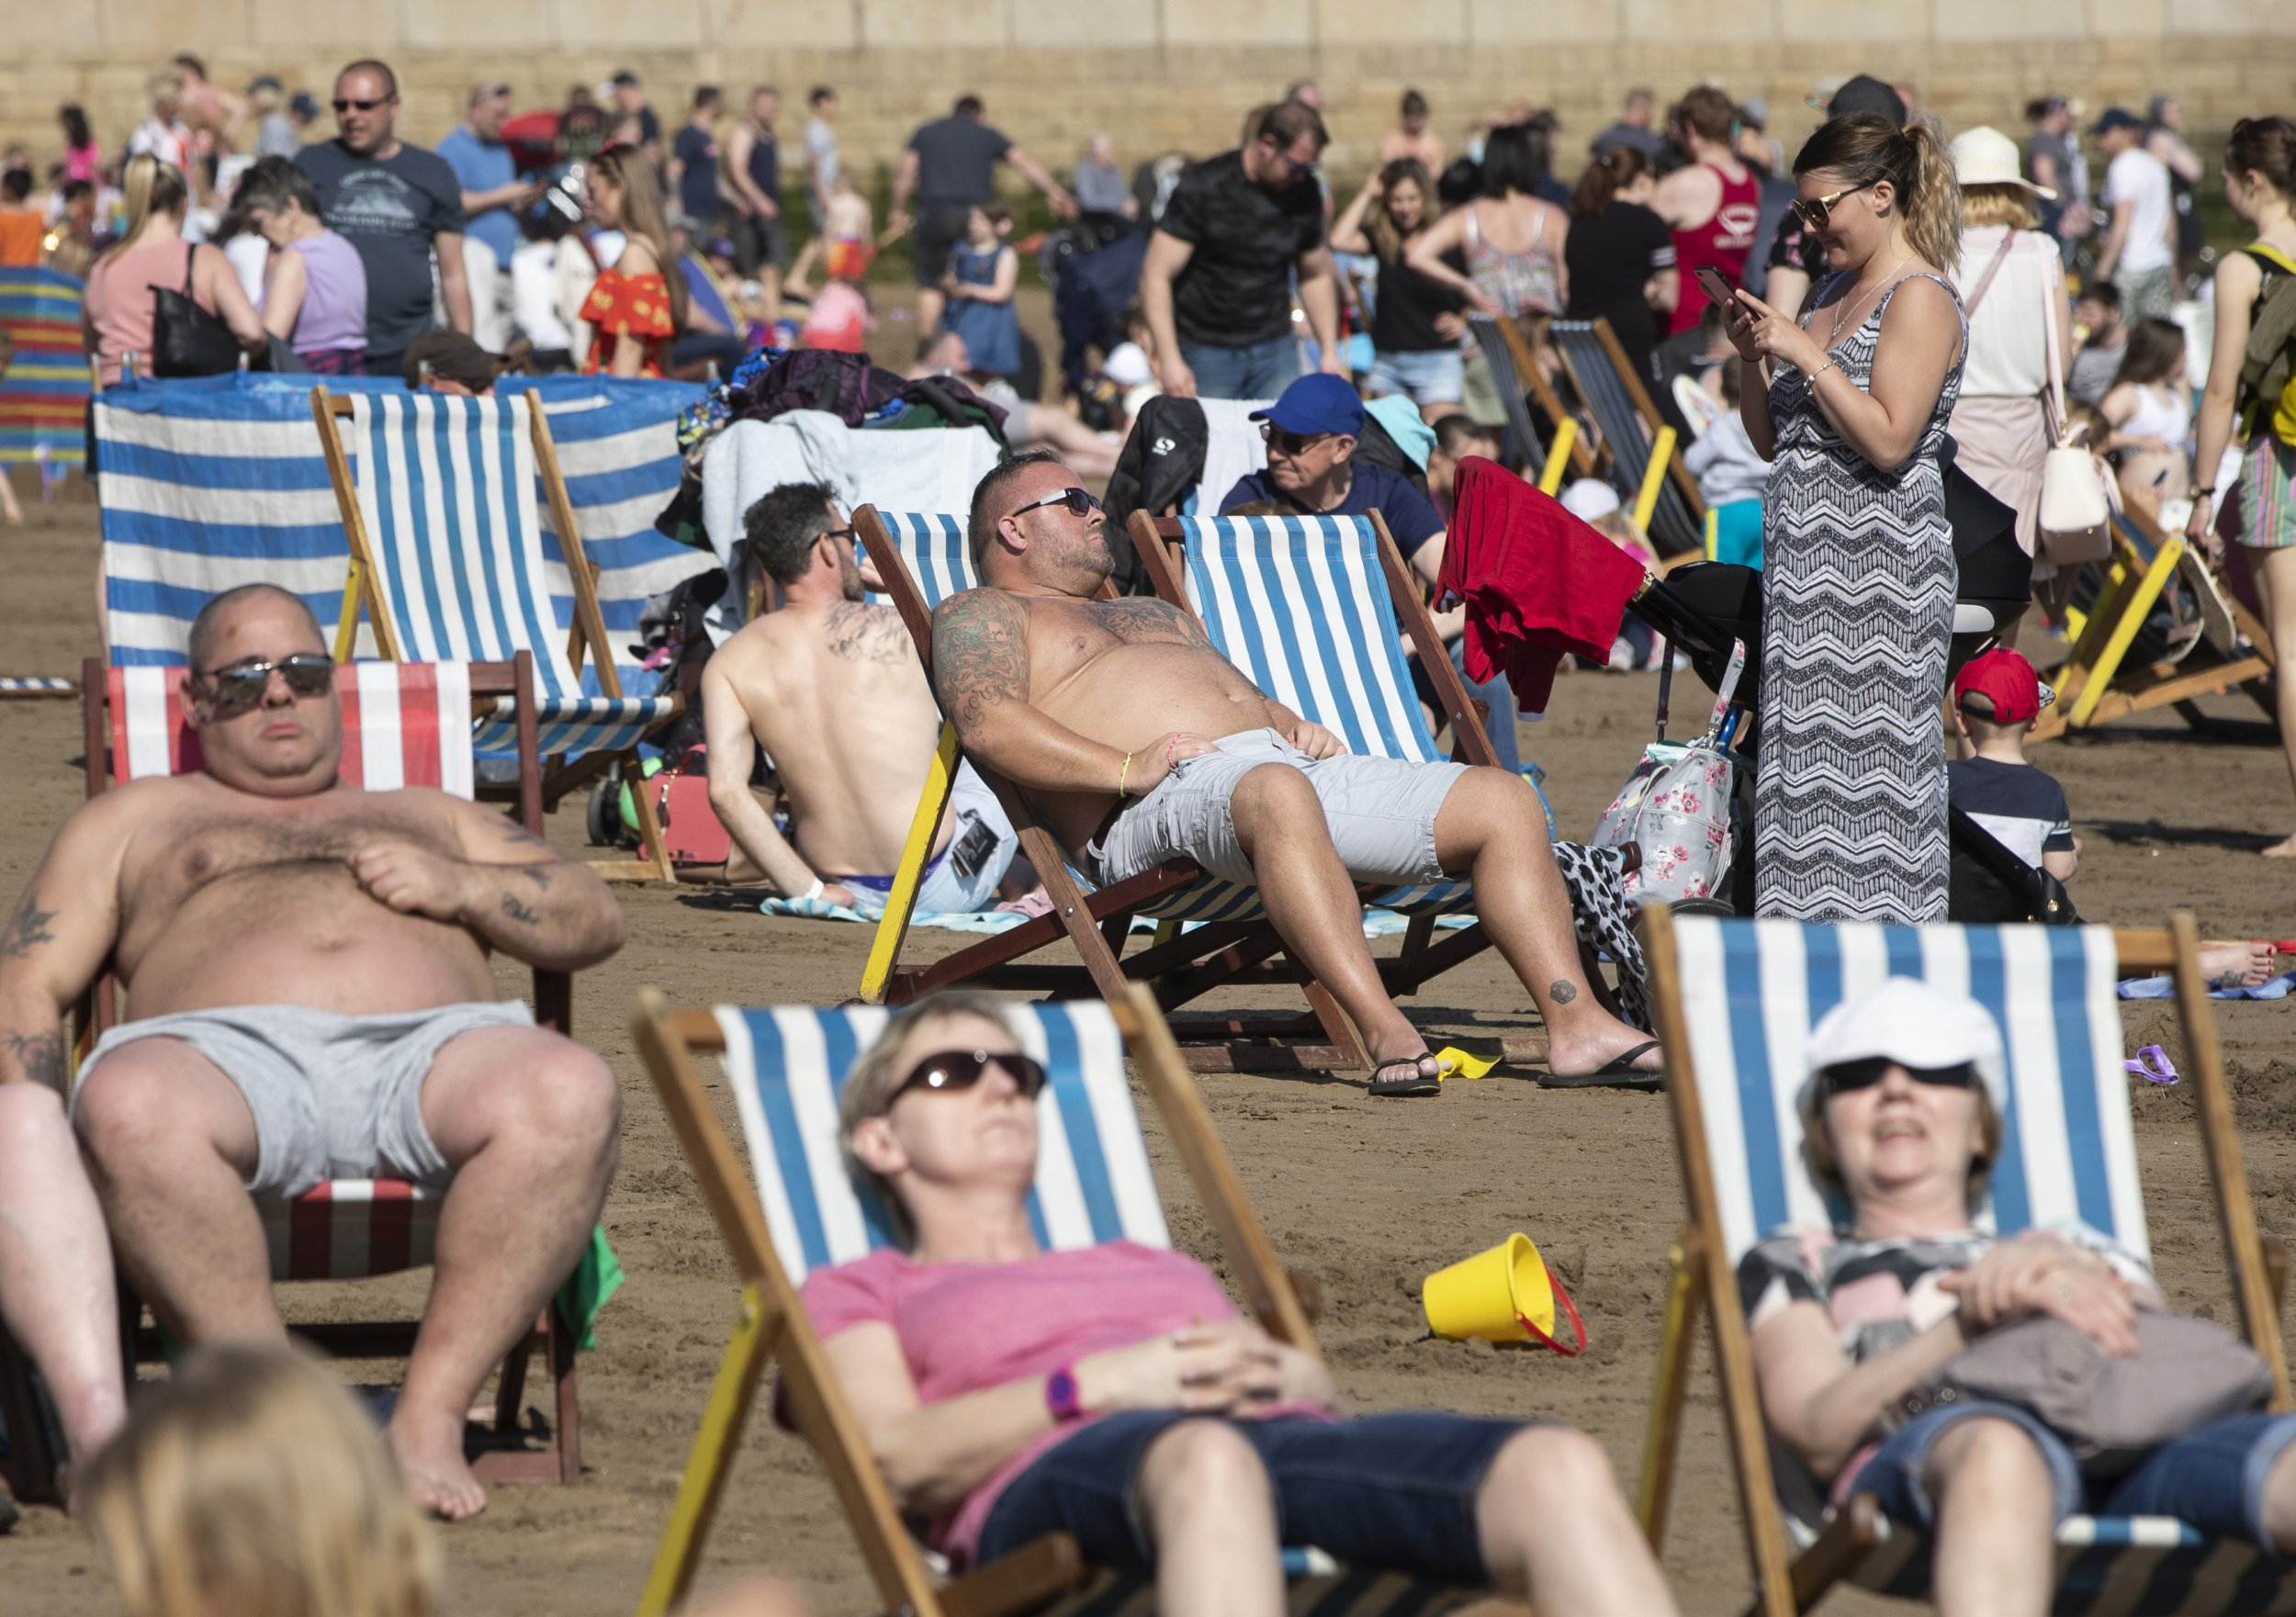 People enjoy the hot weather on Scarborough beach as Britain is set for a sunny Easter bank holiday weekend, that could break national records. PRESS ASSOCIATION Photo. Picture date: Saturday April 20, 2019. See PA story WEATHER Easter. Photo credit should read: Danny Lawson/PA Wire